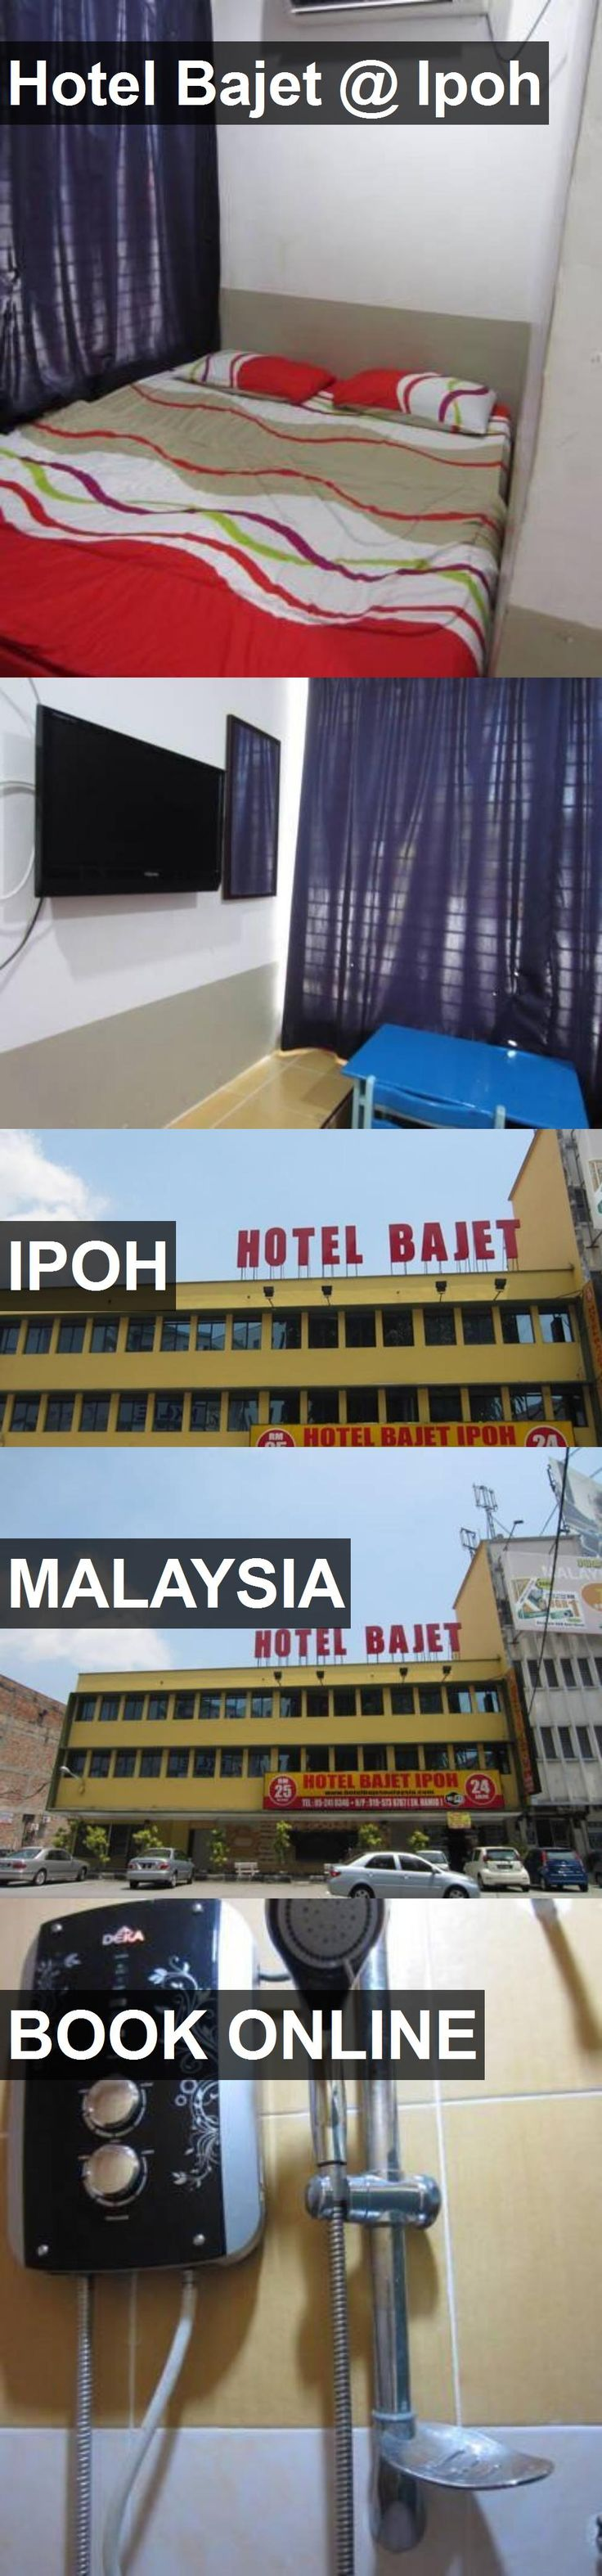 Hotel Bajet Ipoh In Malaysia For More Information Photos Reviews